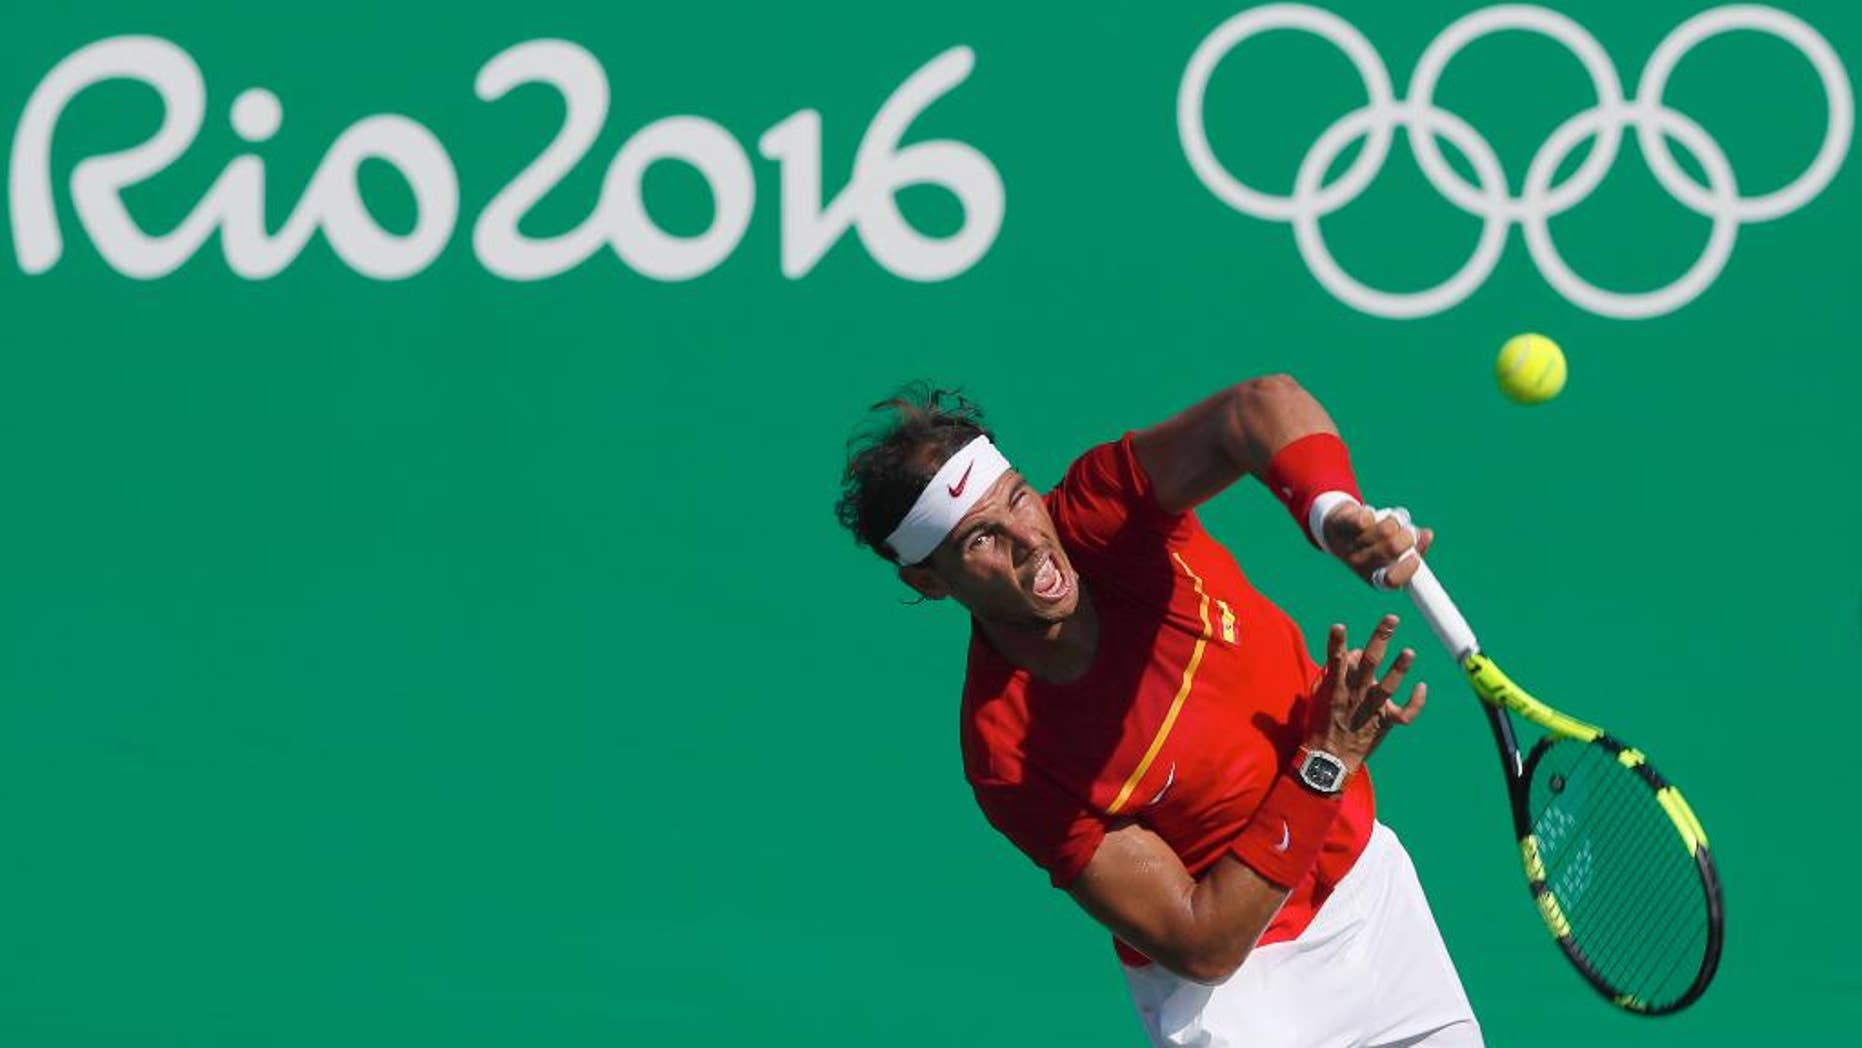 Spain's Rafael Nadal serves to Japan's Kei Nishikori during the bronze medal match of the men's tennis competition at the 2016 Summer Olympics in Rio de Janeiro, Brazil, Sunday, Aug. 14, 2016. (AP Photo/Vadim Ghirda)